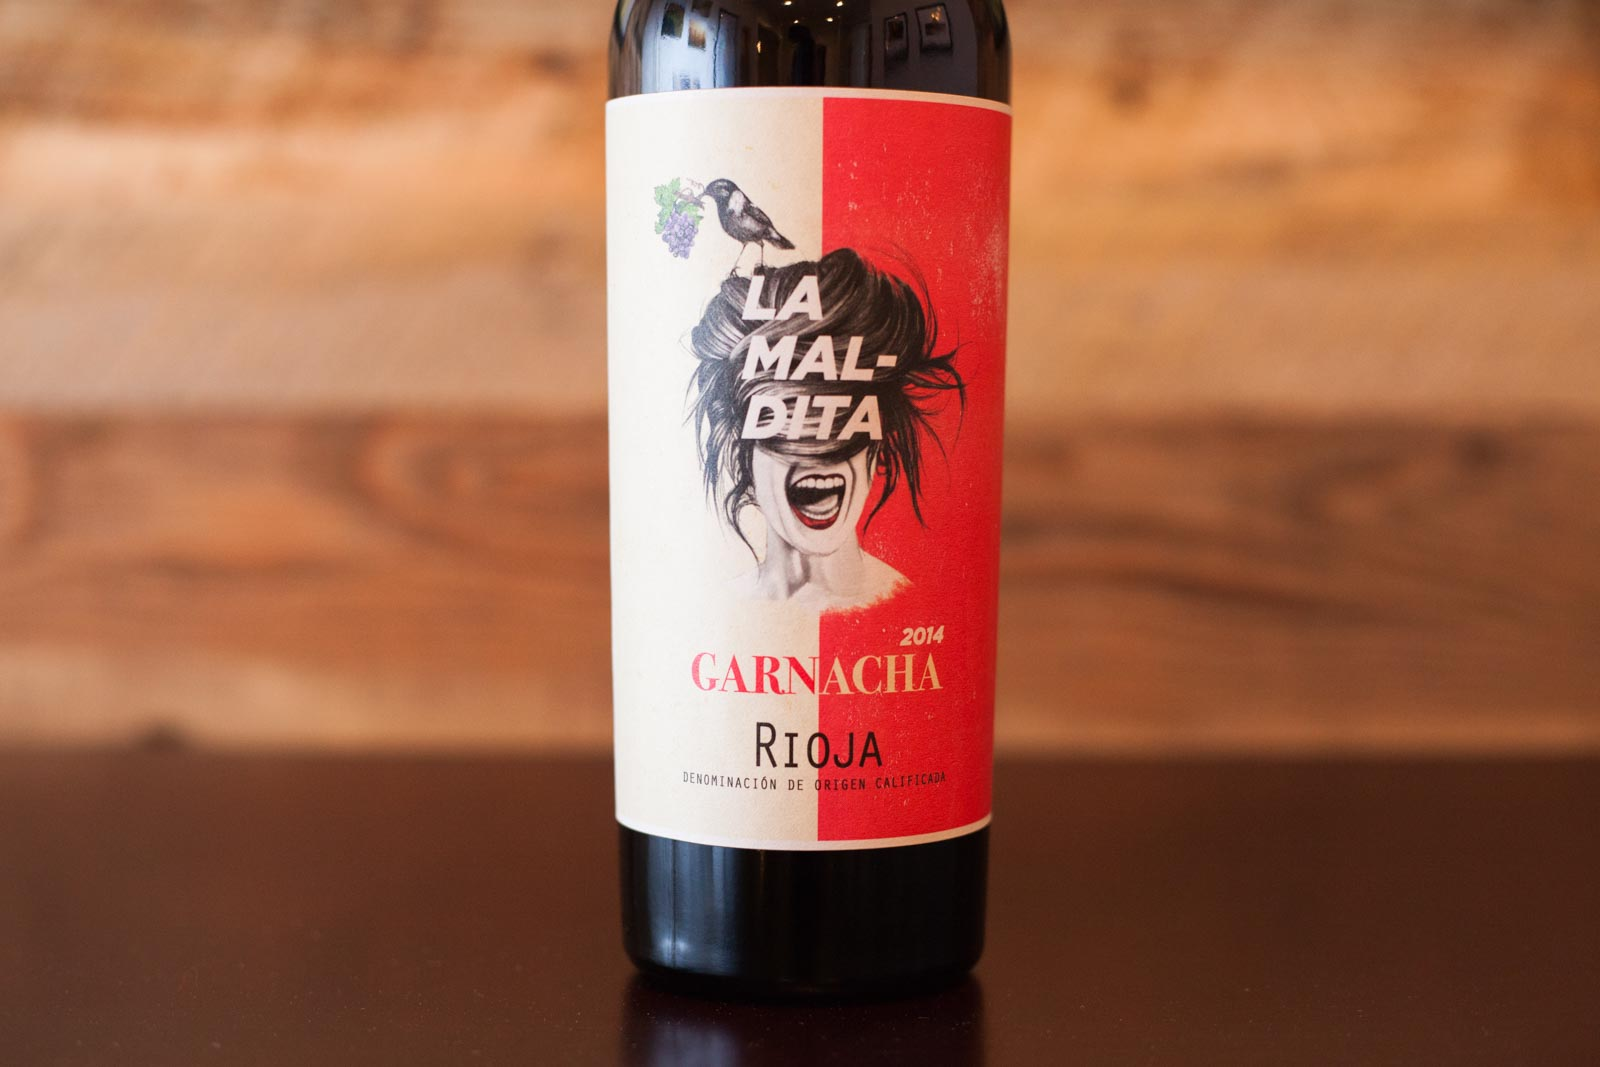 2014 La Maldita Rioja Garnacha, Top Value Red Wine of 2016